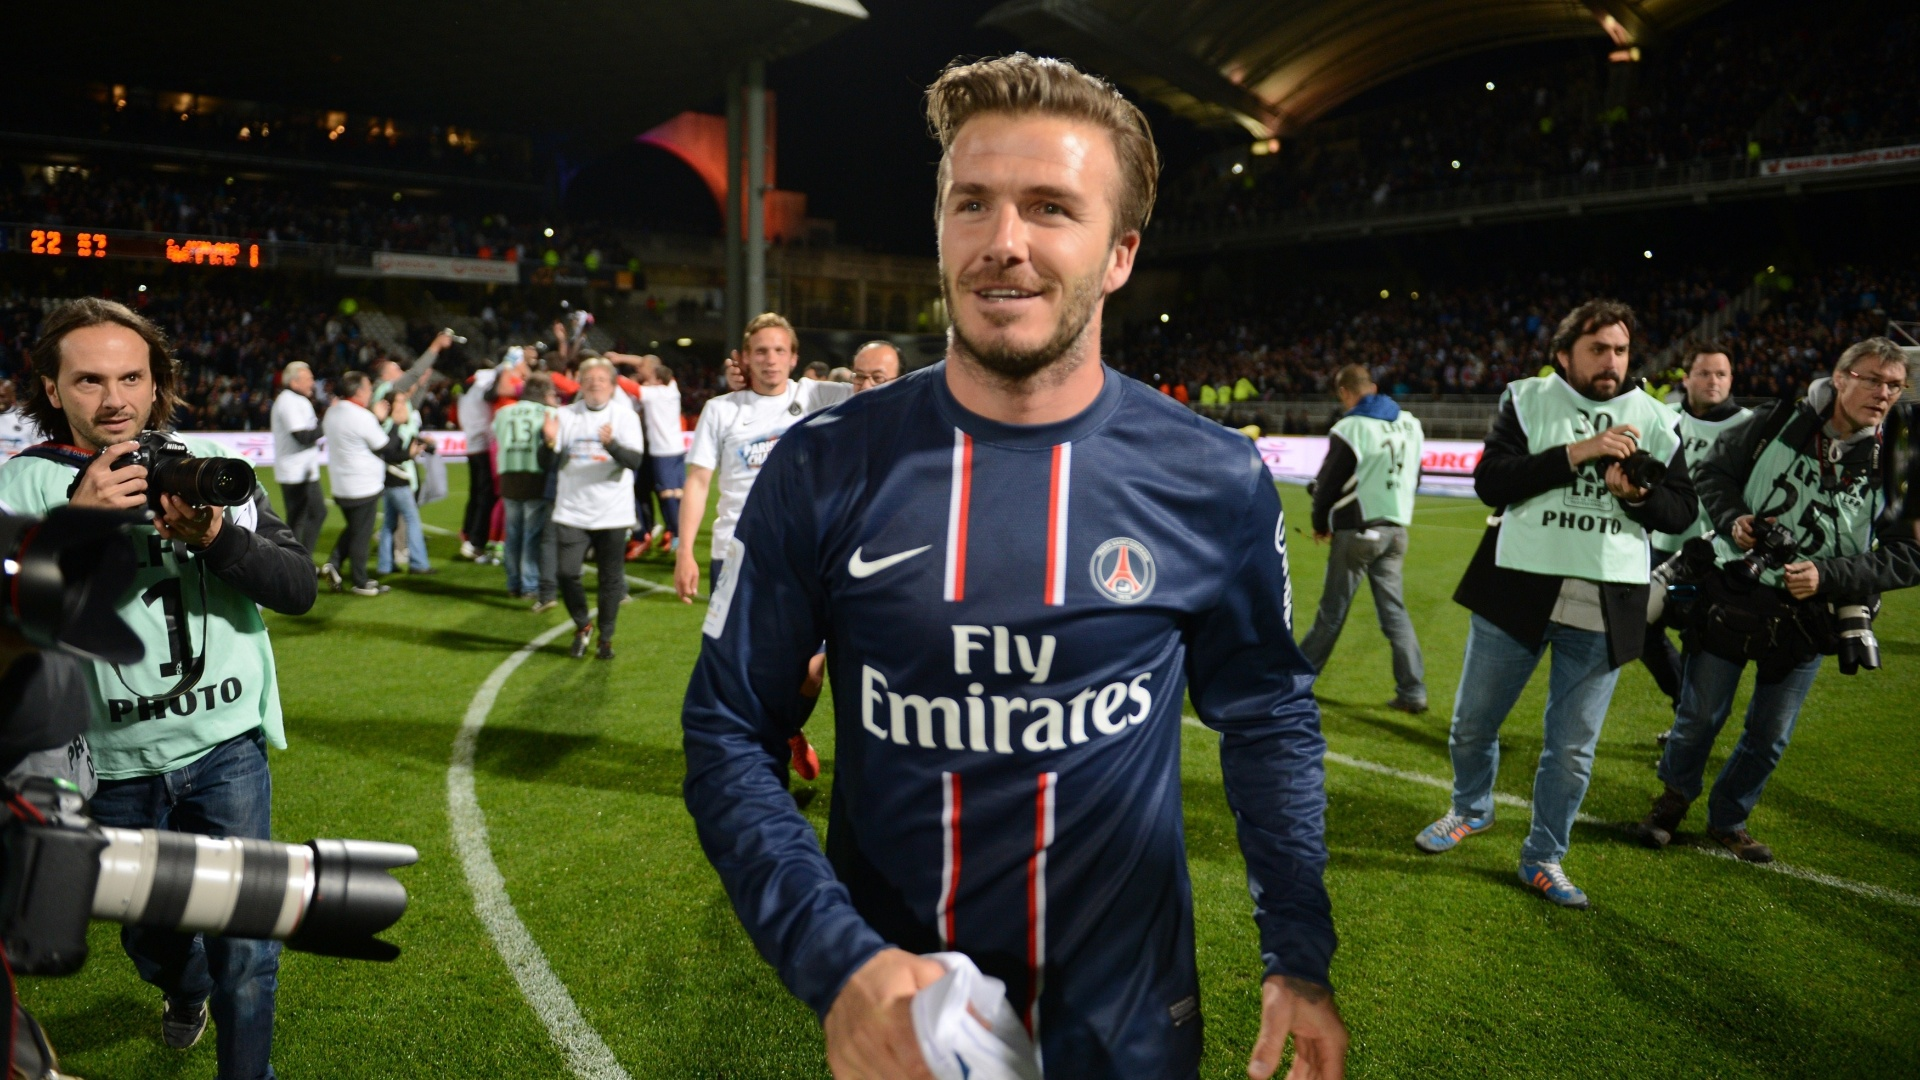 David Beckham se despede do futebol